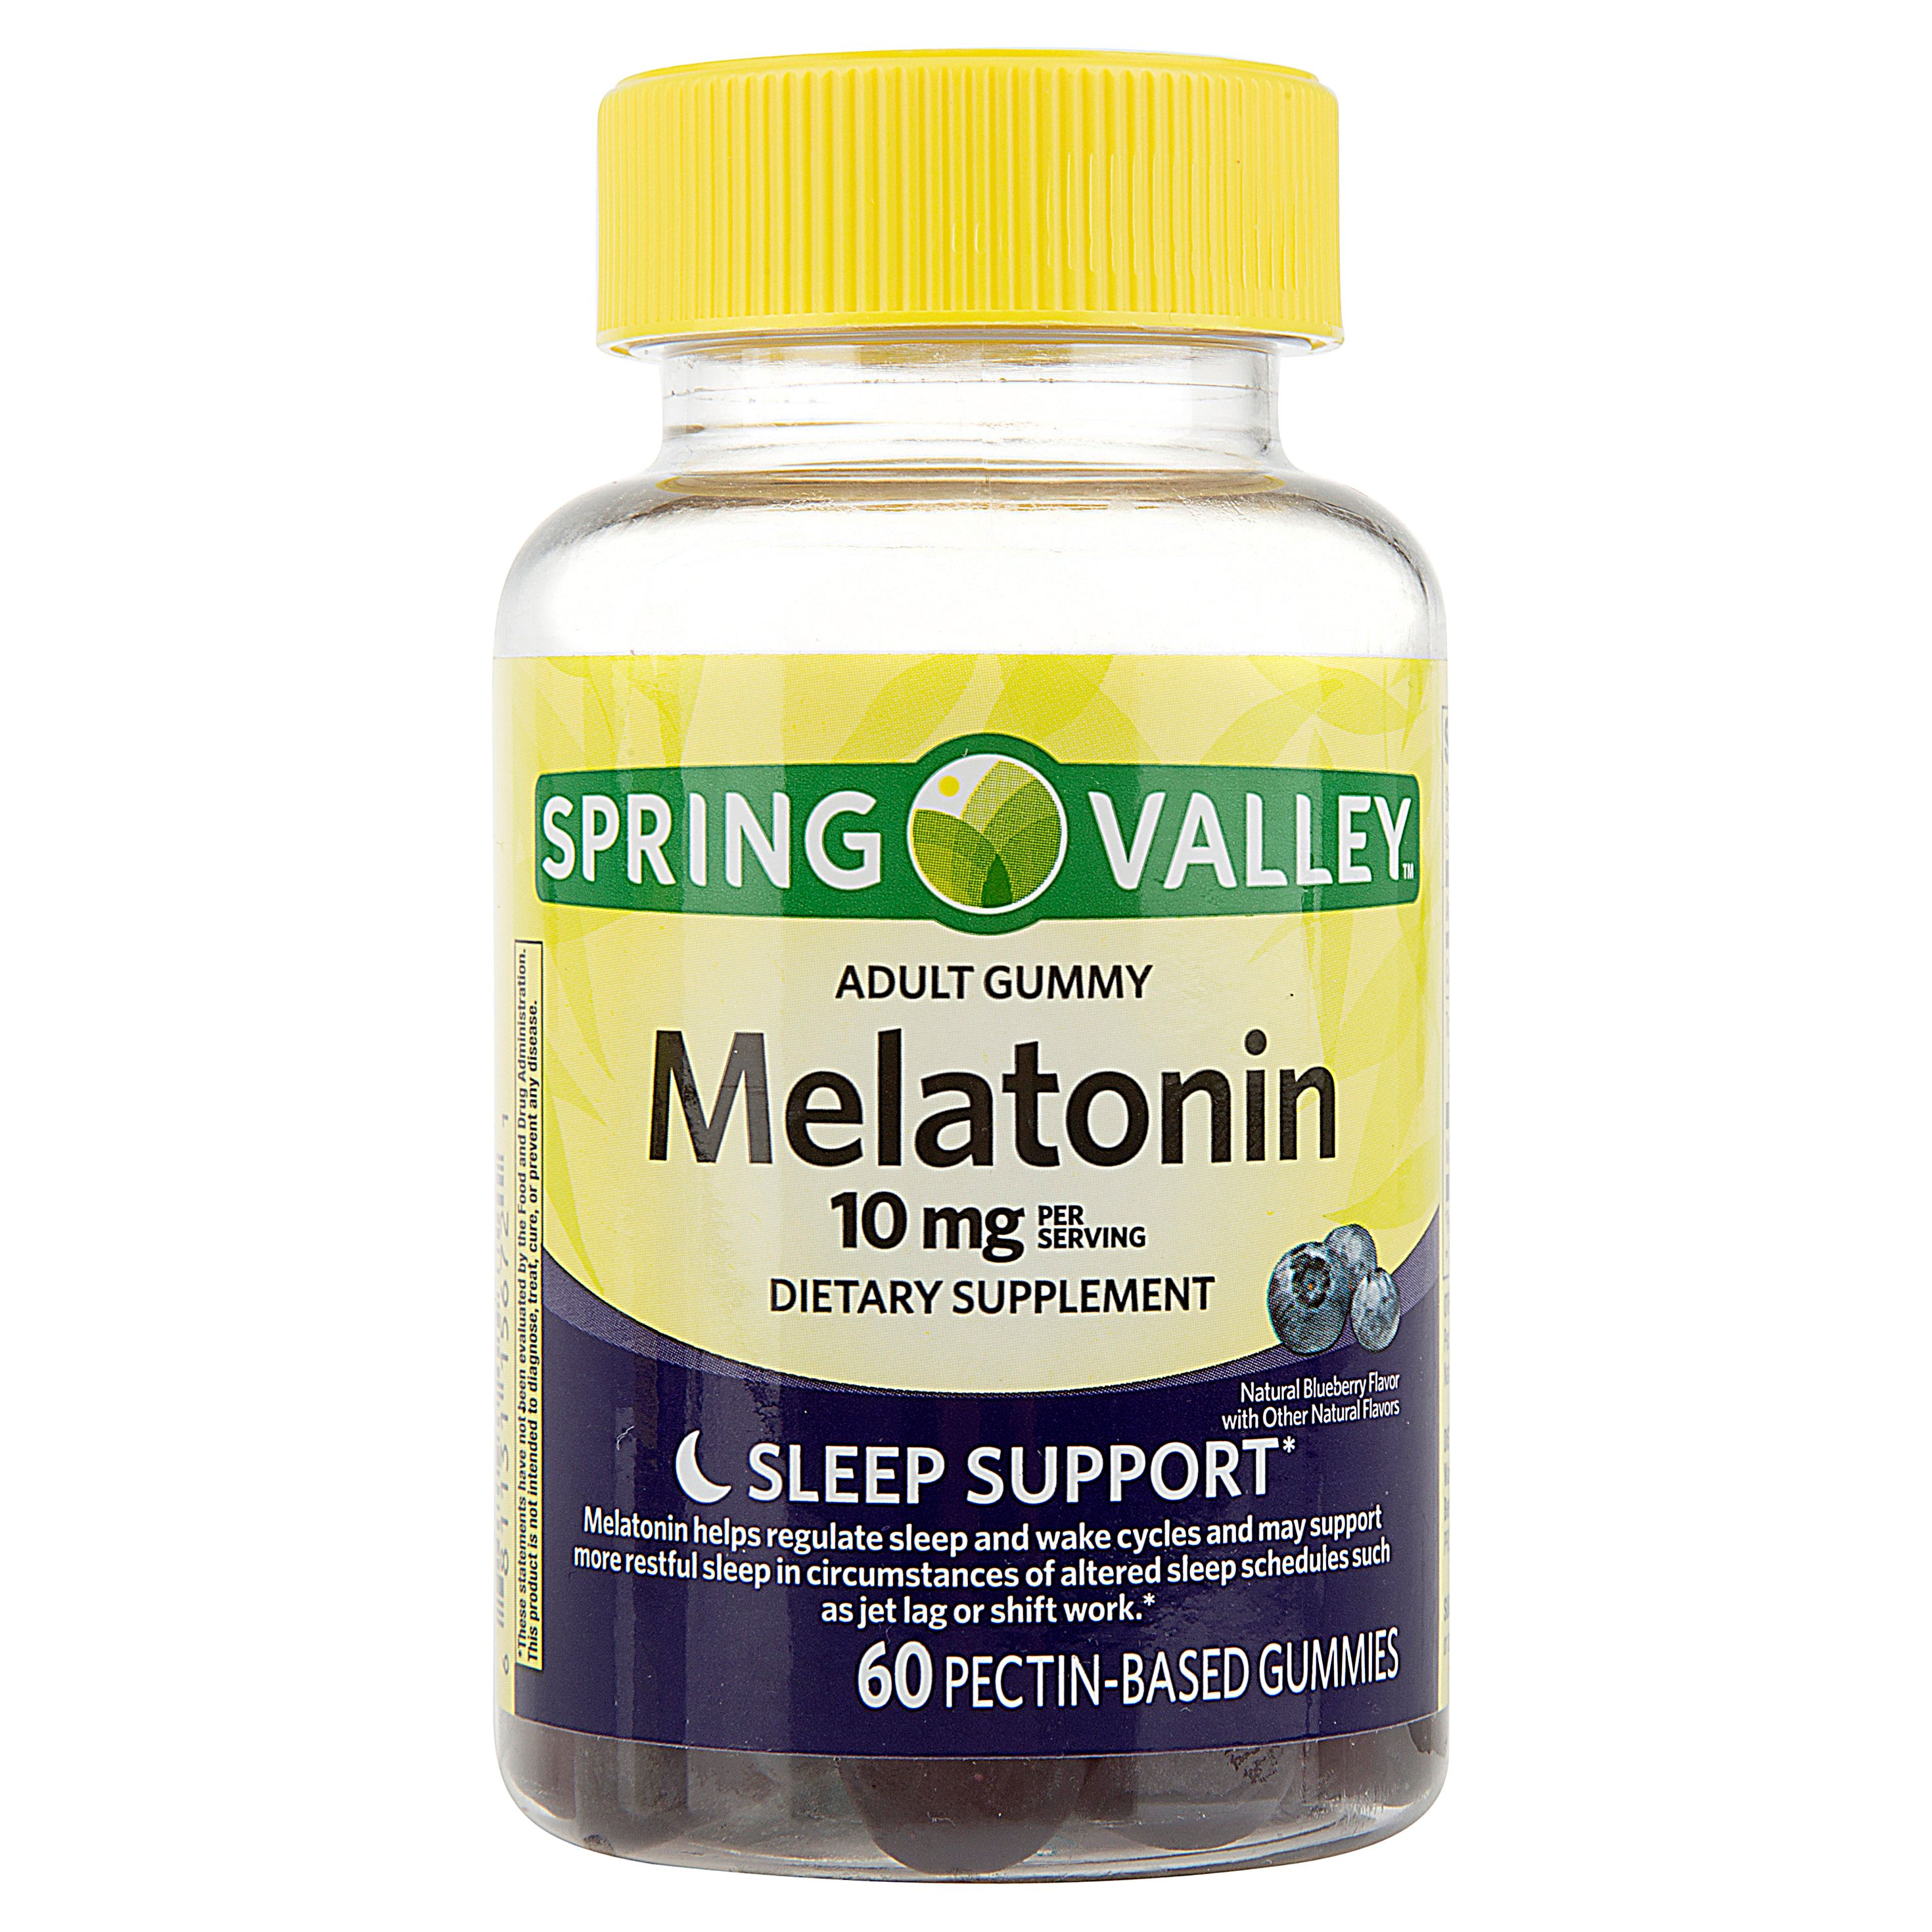 Spring Valley Melatonin Adult Pectin-Based Gummies, 10 mg, 60 count